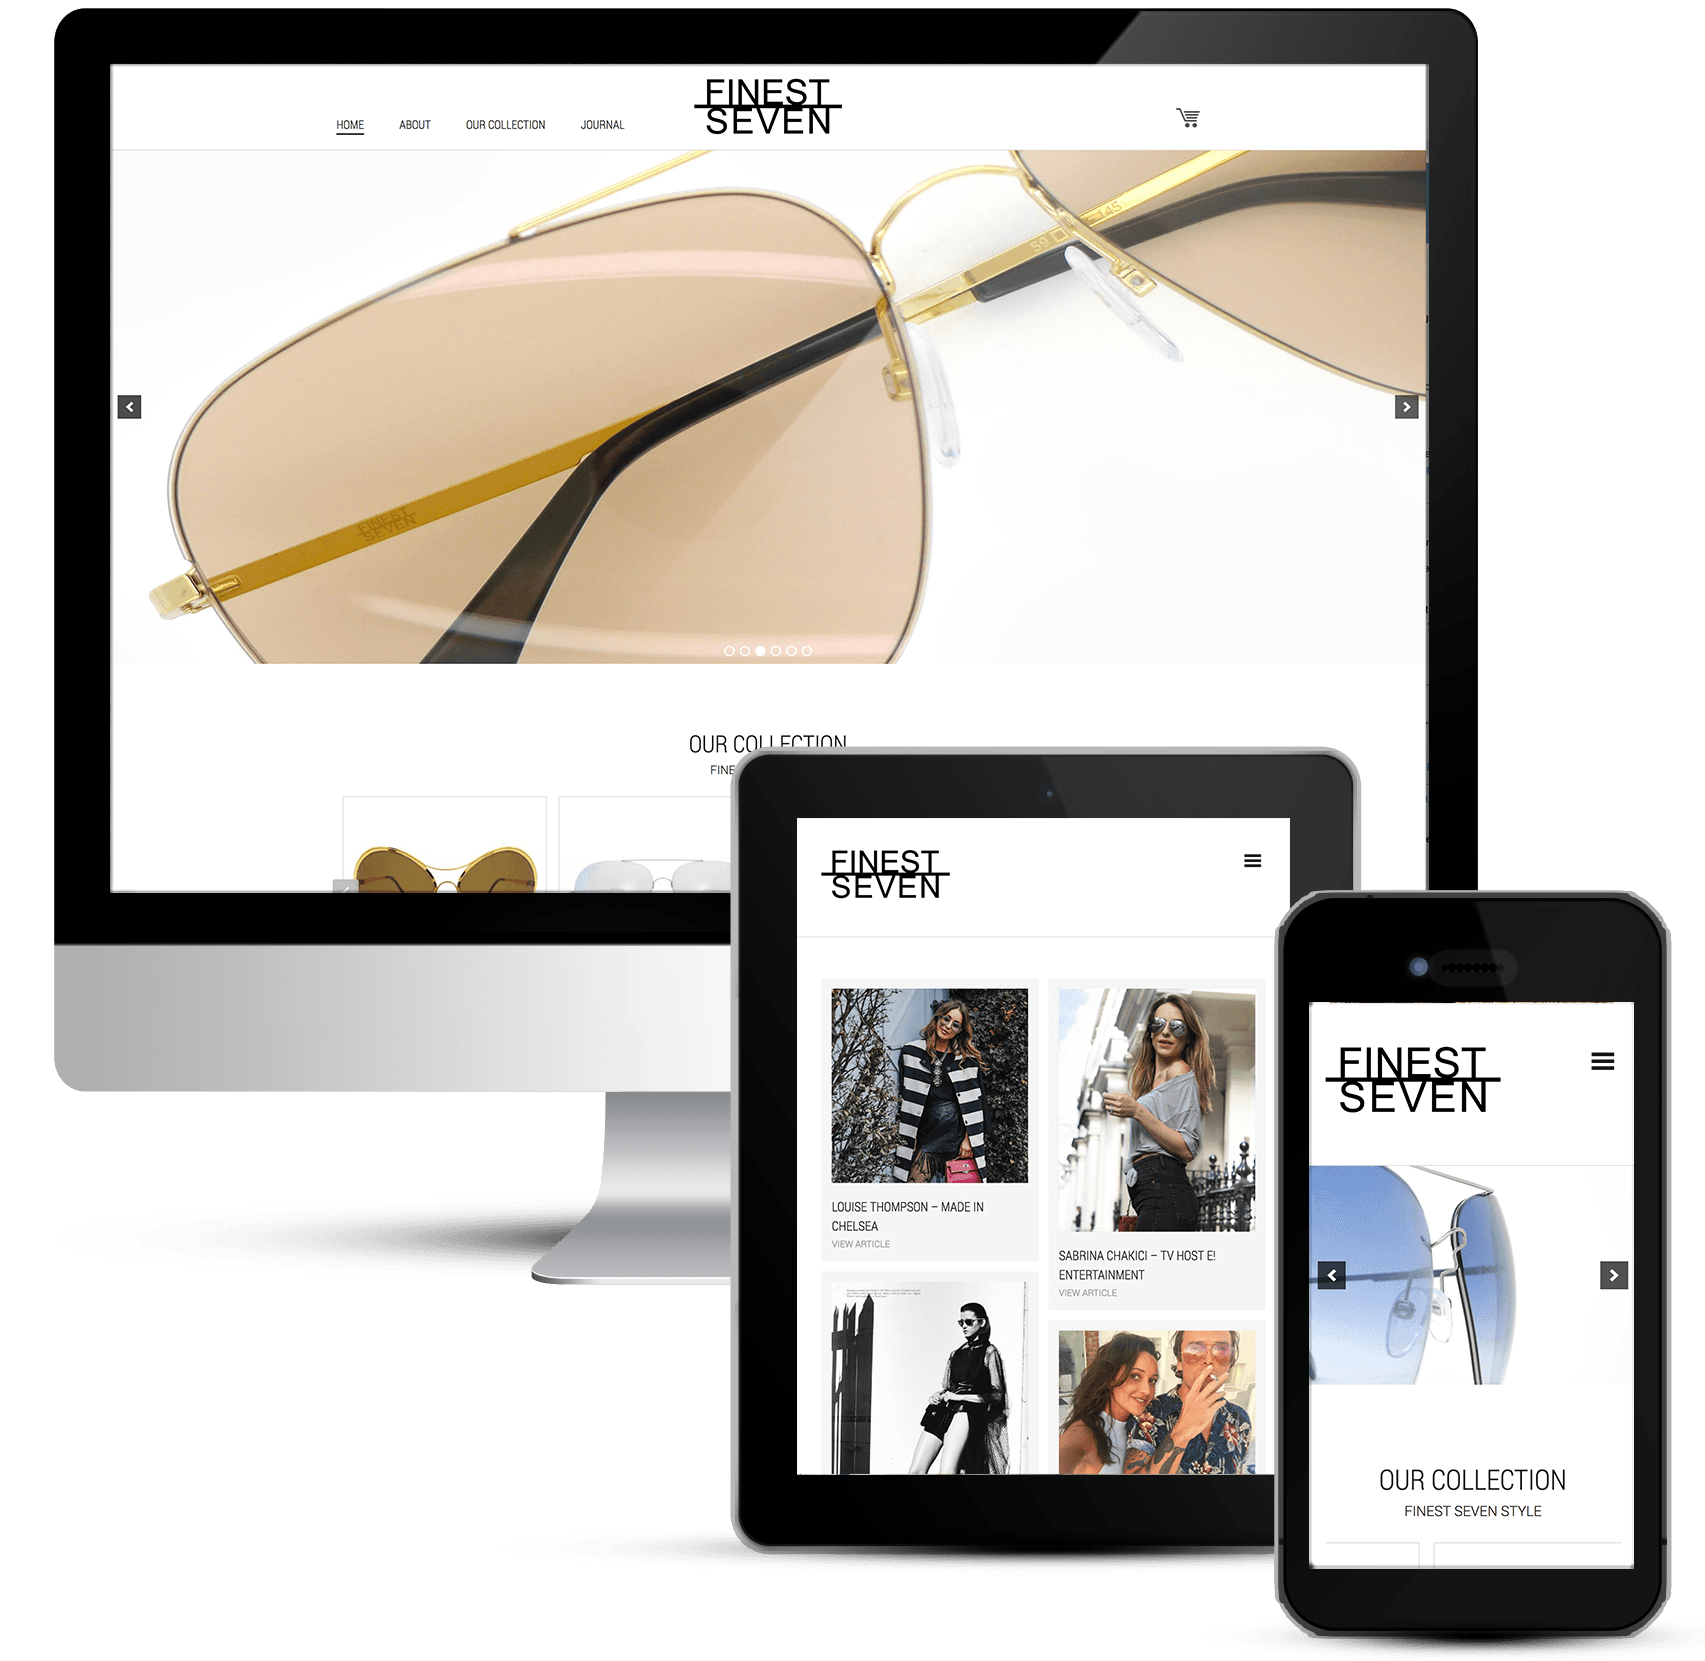 eCommerce Store web design, Finest Seven Designer Sunglasses